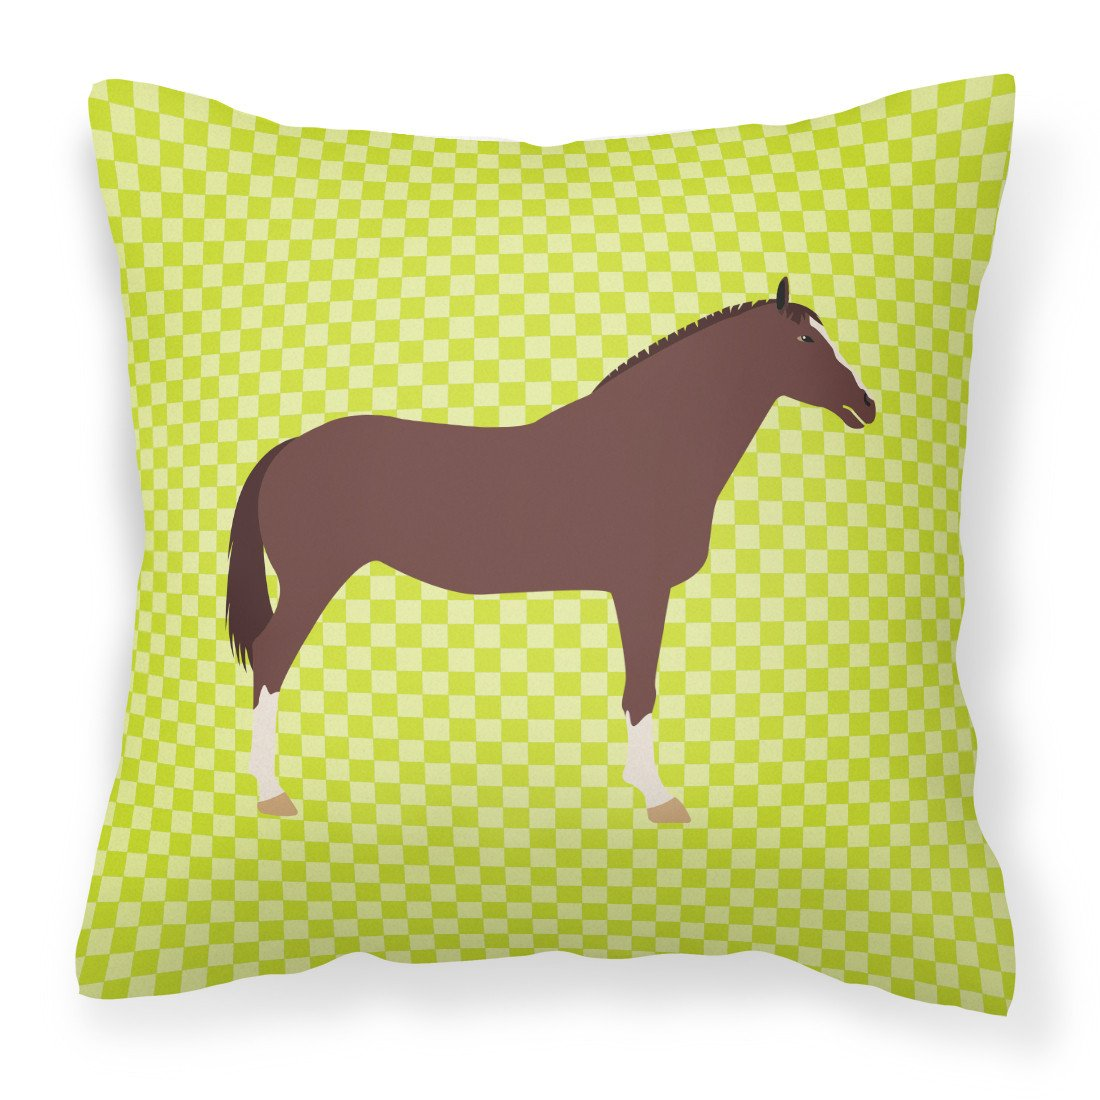 English Thoroughbred Horse Green Fabric Decorative Pillow BB7739PW1818 by Caroline's Treasures